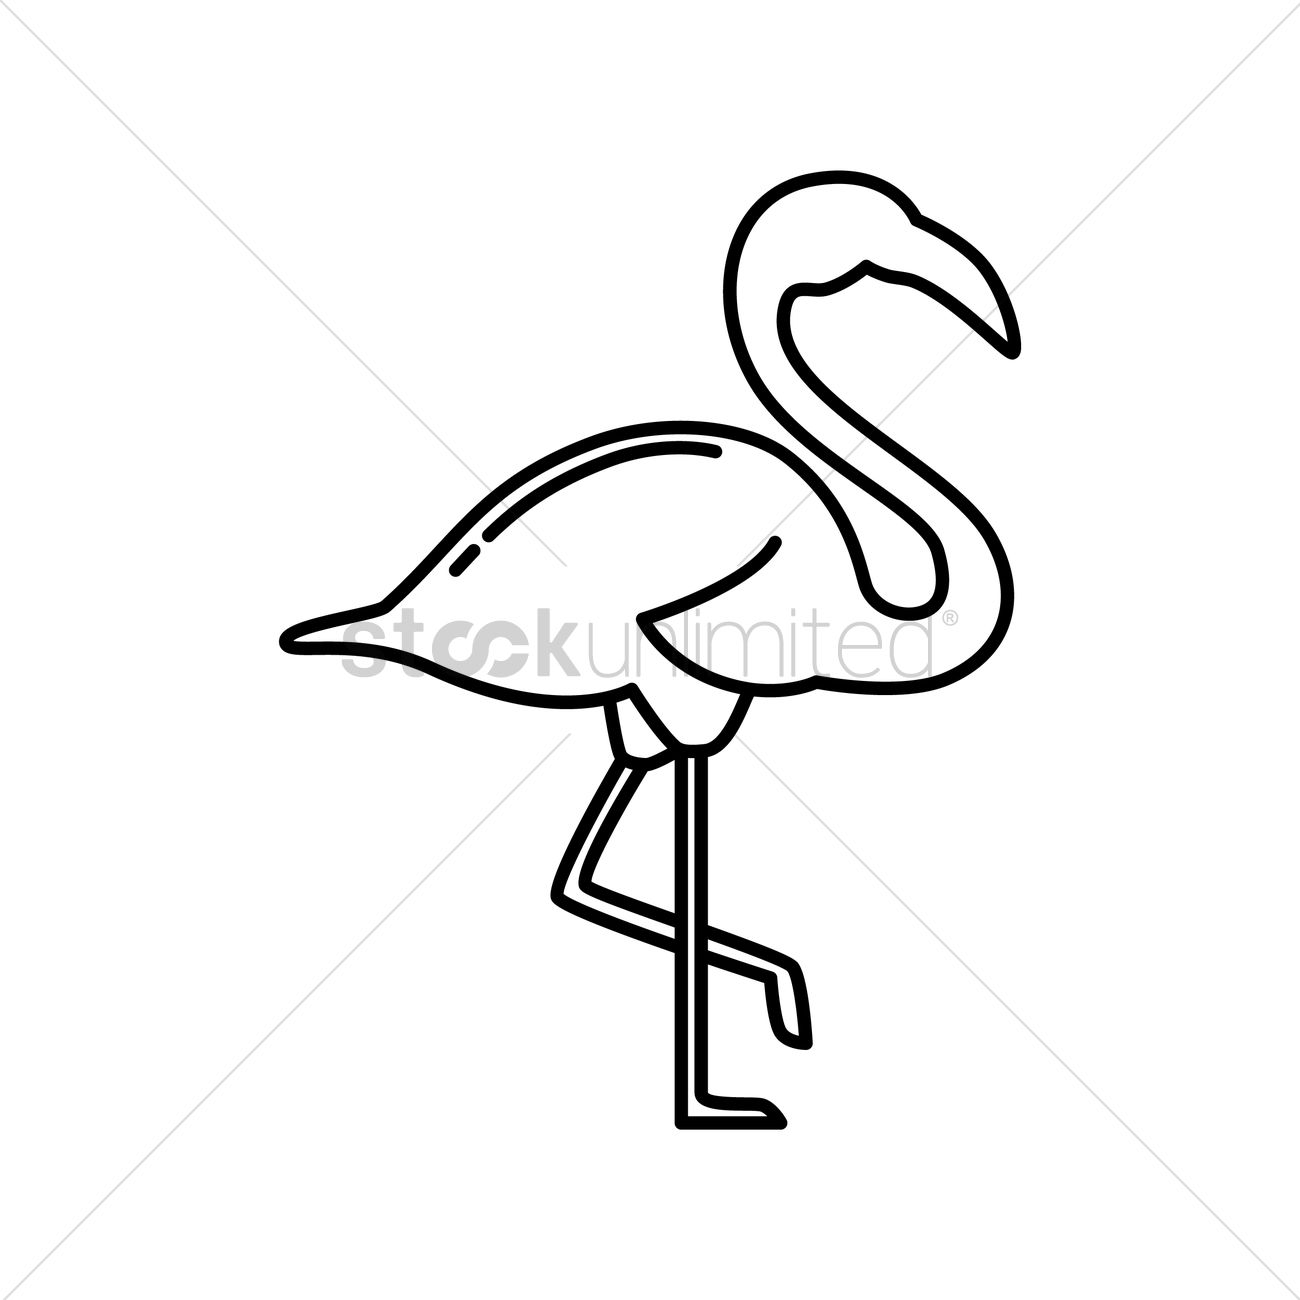 Flamingo vector image 1991789 stockunlimited flamingo vector graphic pronofoot35fo Images